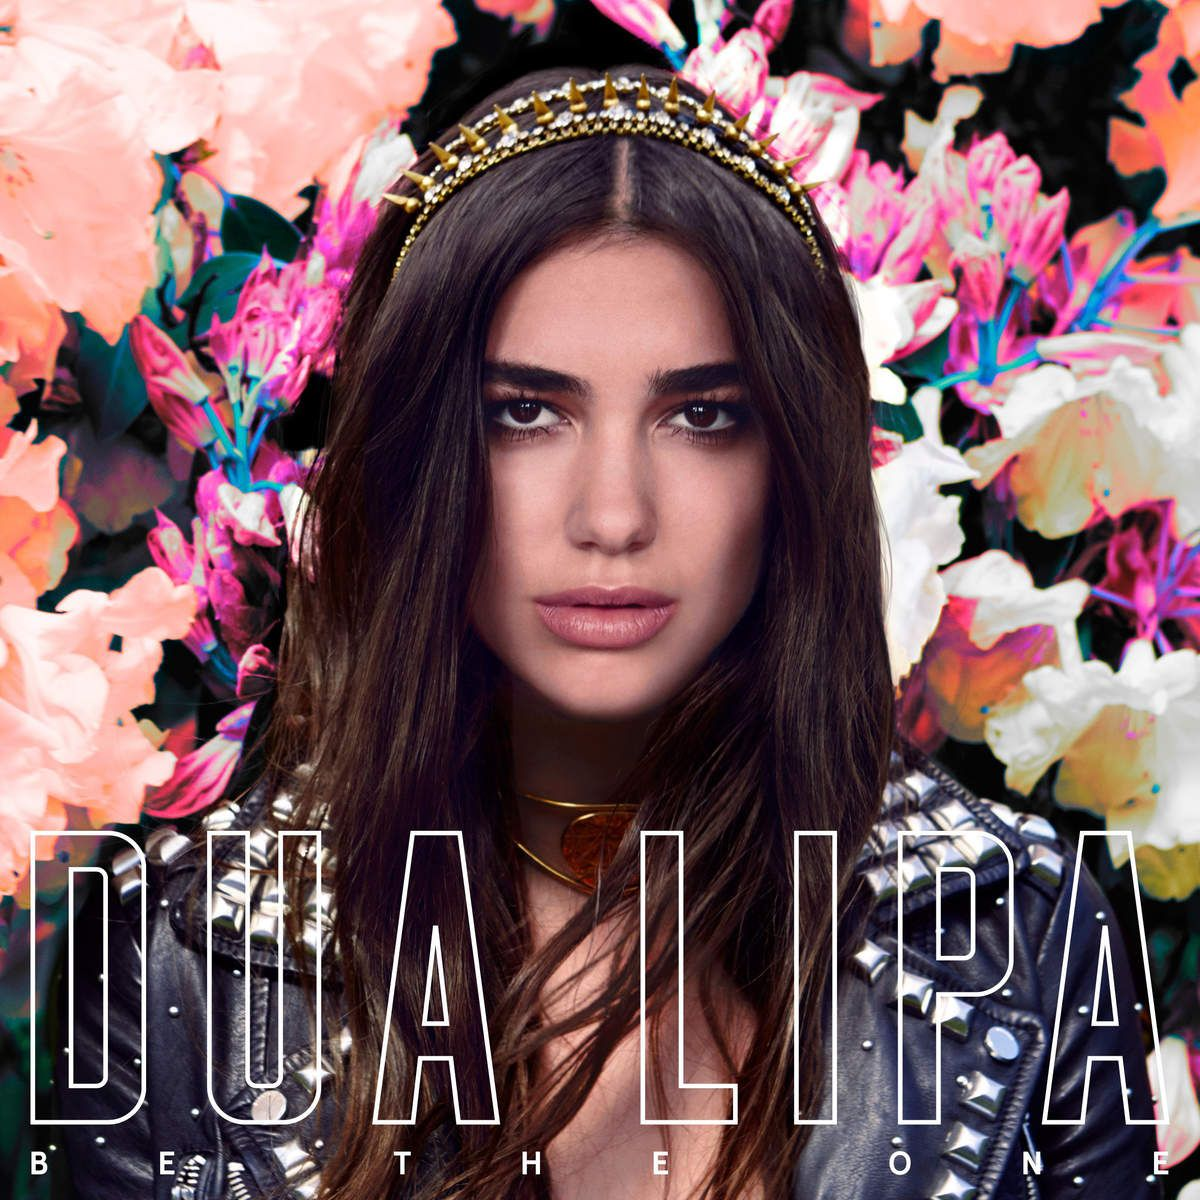 dua-lipa-be-the-one-2015-1200x1200.jpg